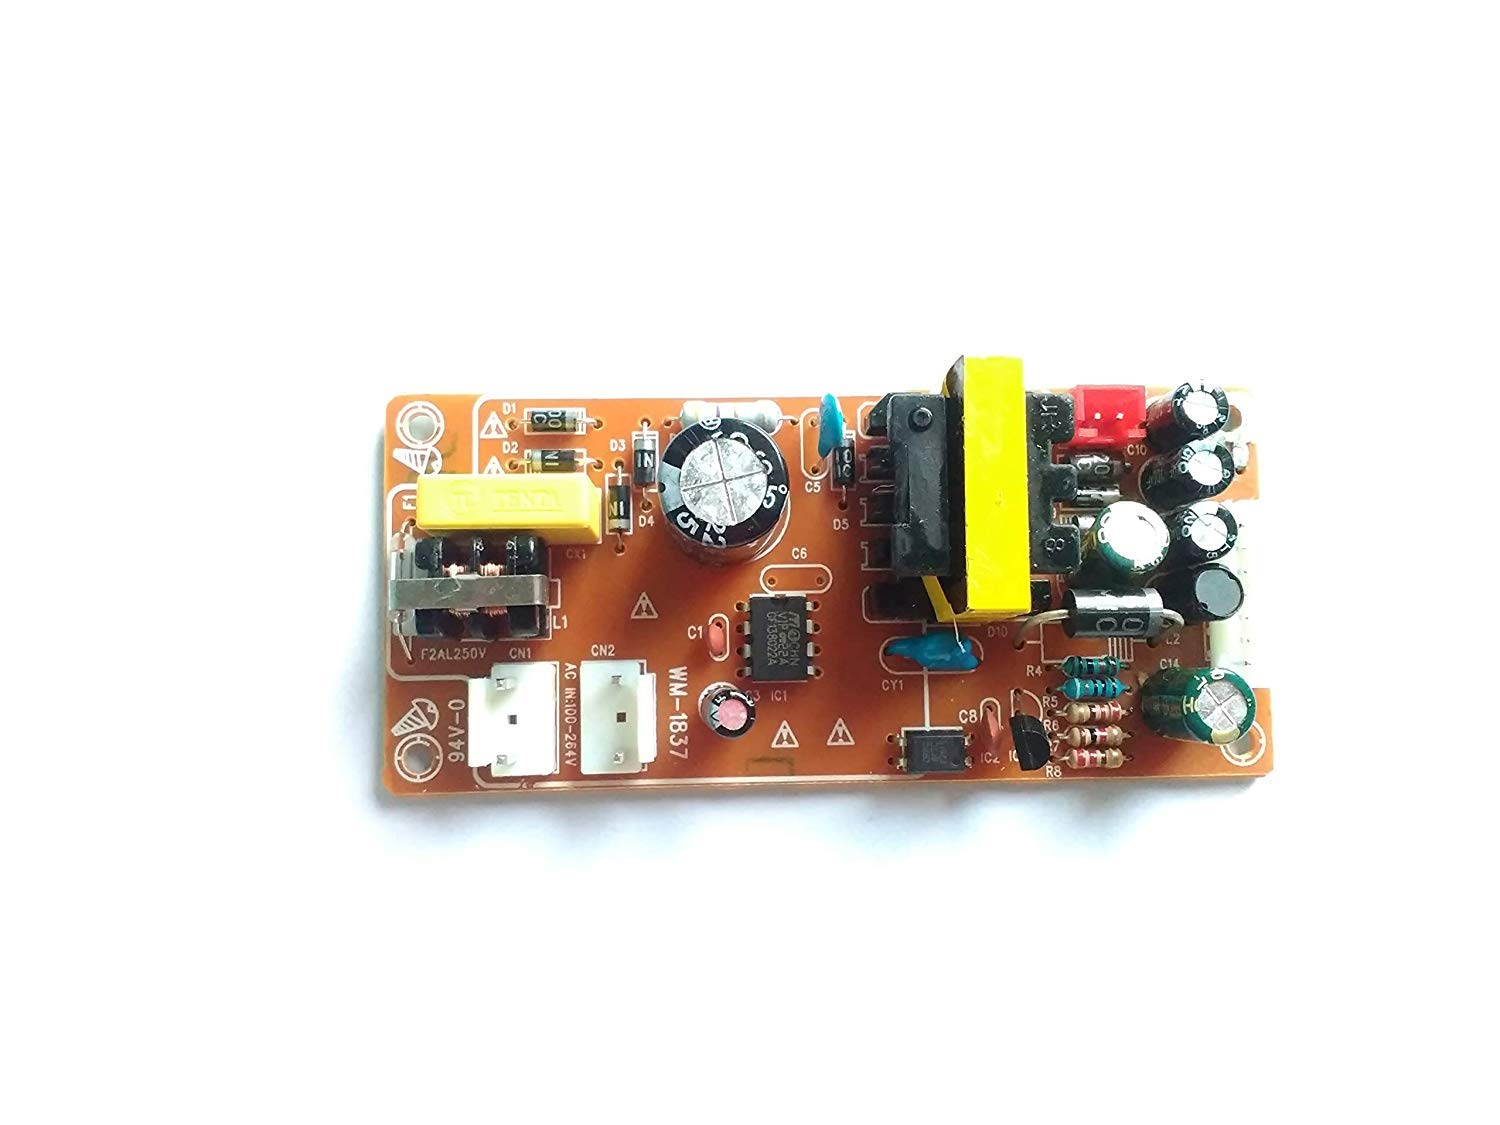 Ac Dc Dvd Universal 5v 12v Switching Power Supply Circuit Board Smps Tablet Electronics